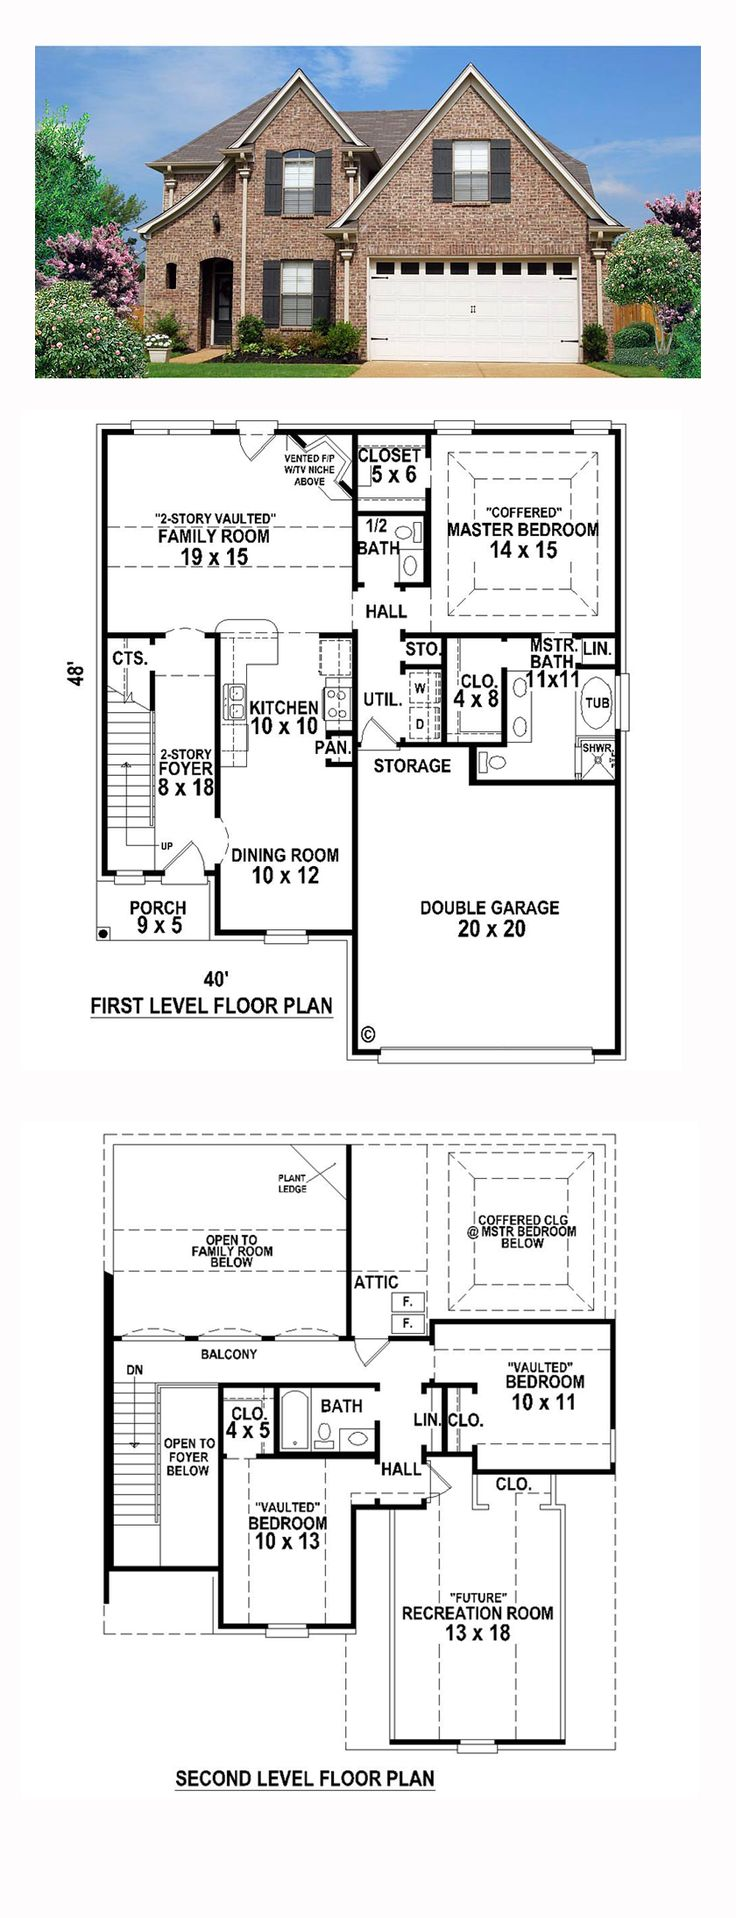 Garlington house home plans house design plans for Garlington homes